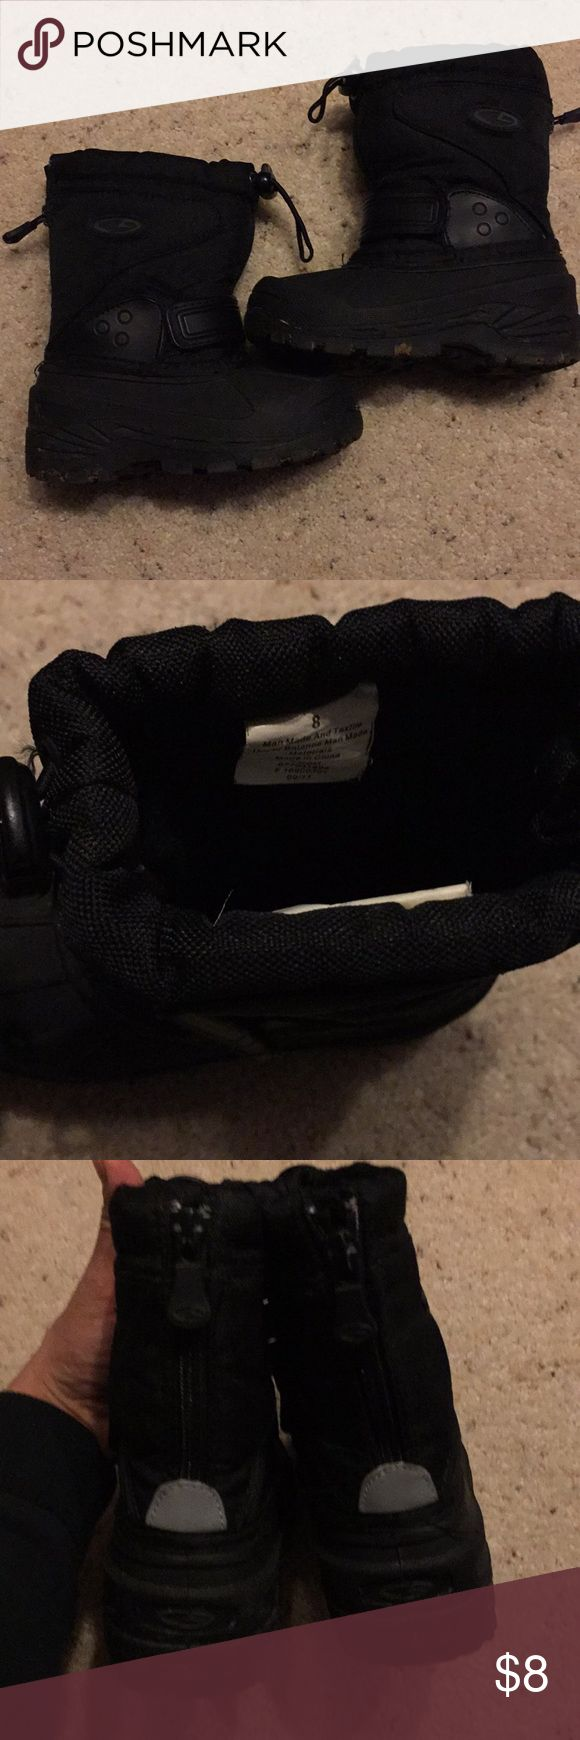 Black snow boots size 8 Champion brand black snow boots size 8. Good condition. Zipper on the back. Very warm. Unisex Shoes Rain & Snow Boots